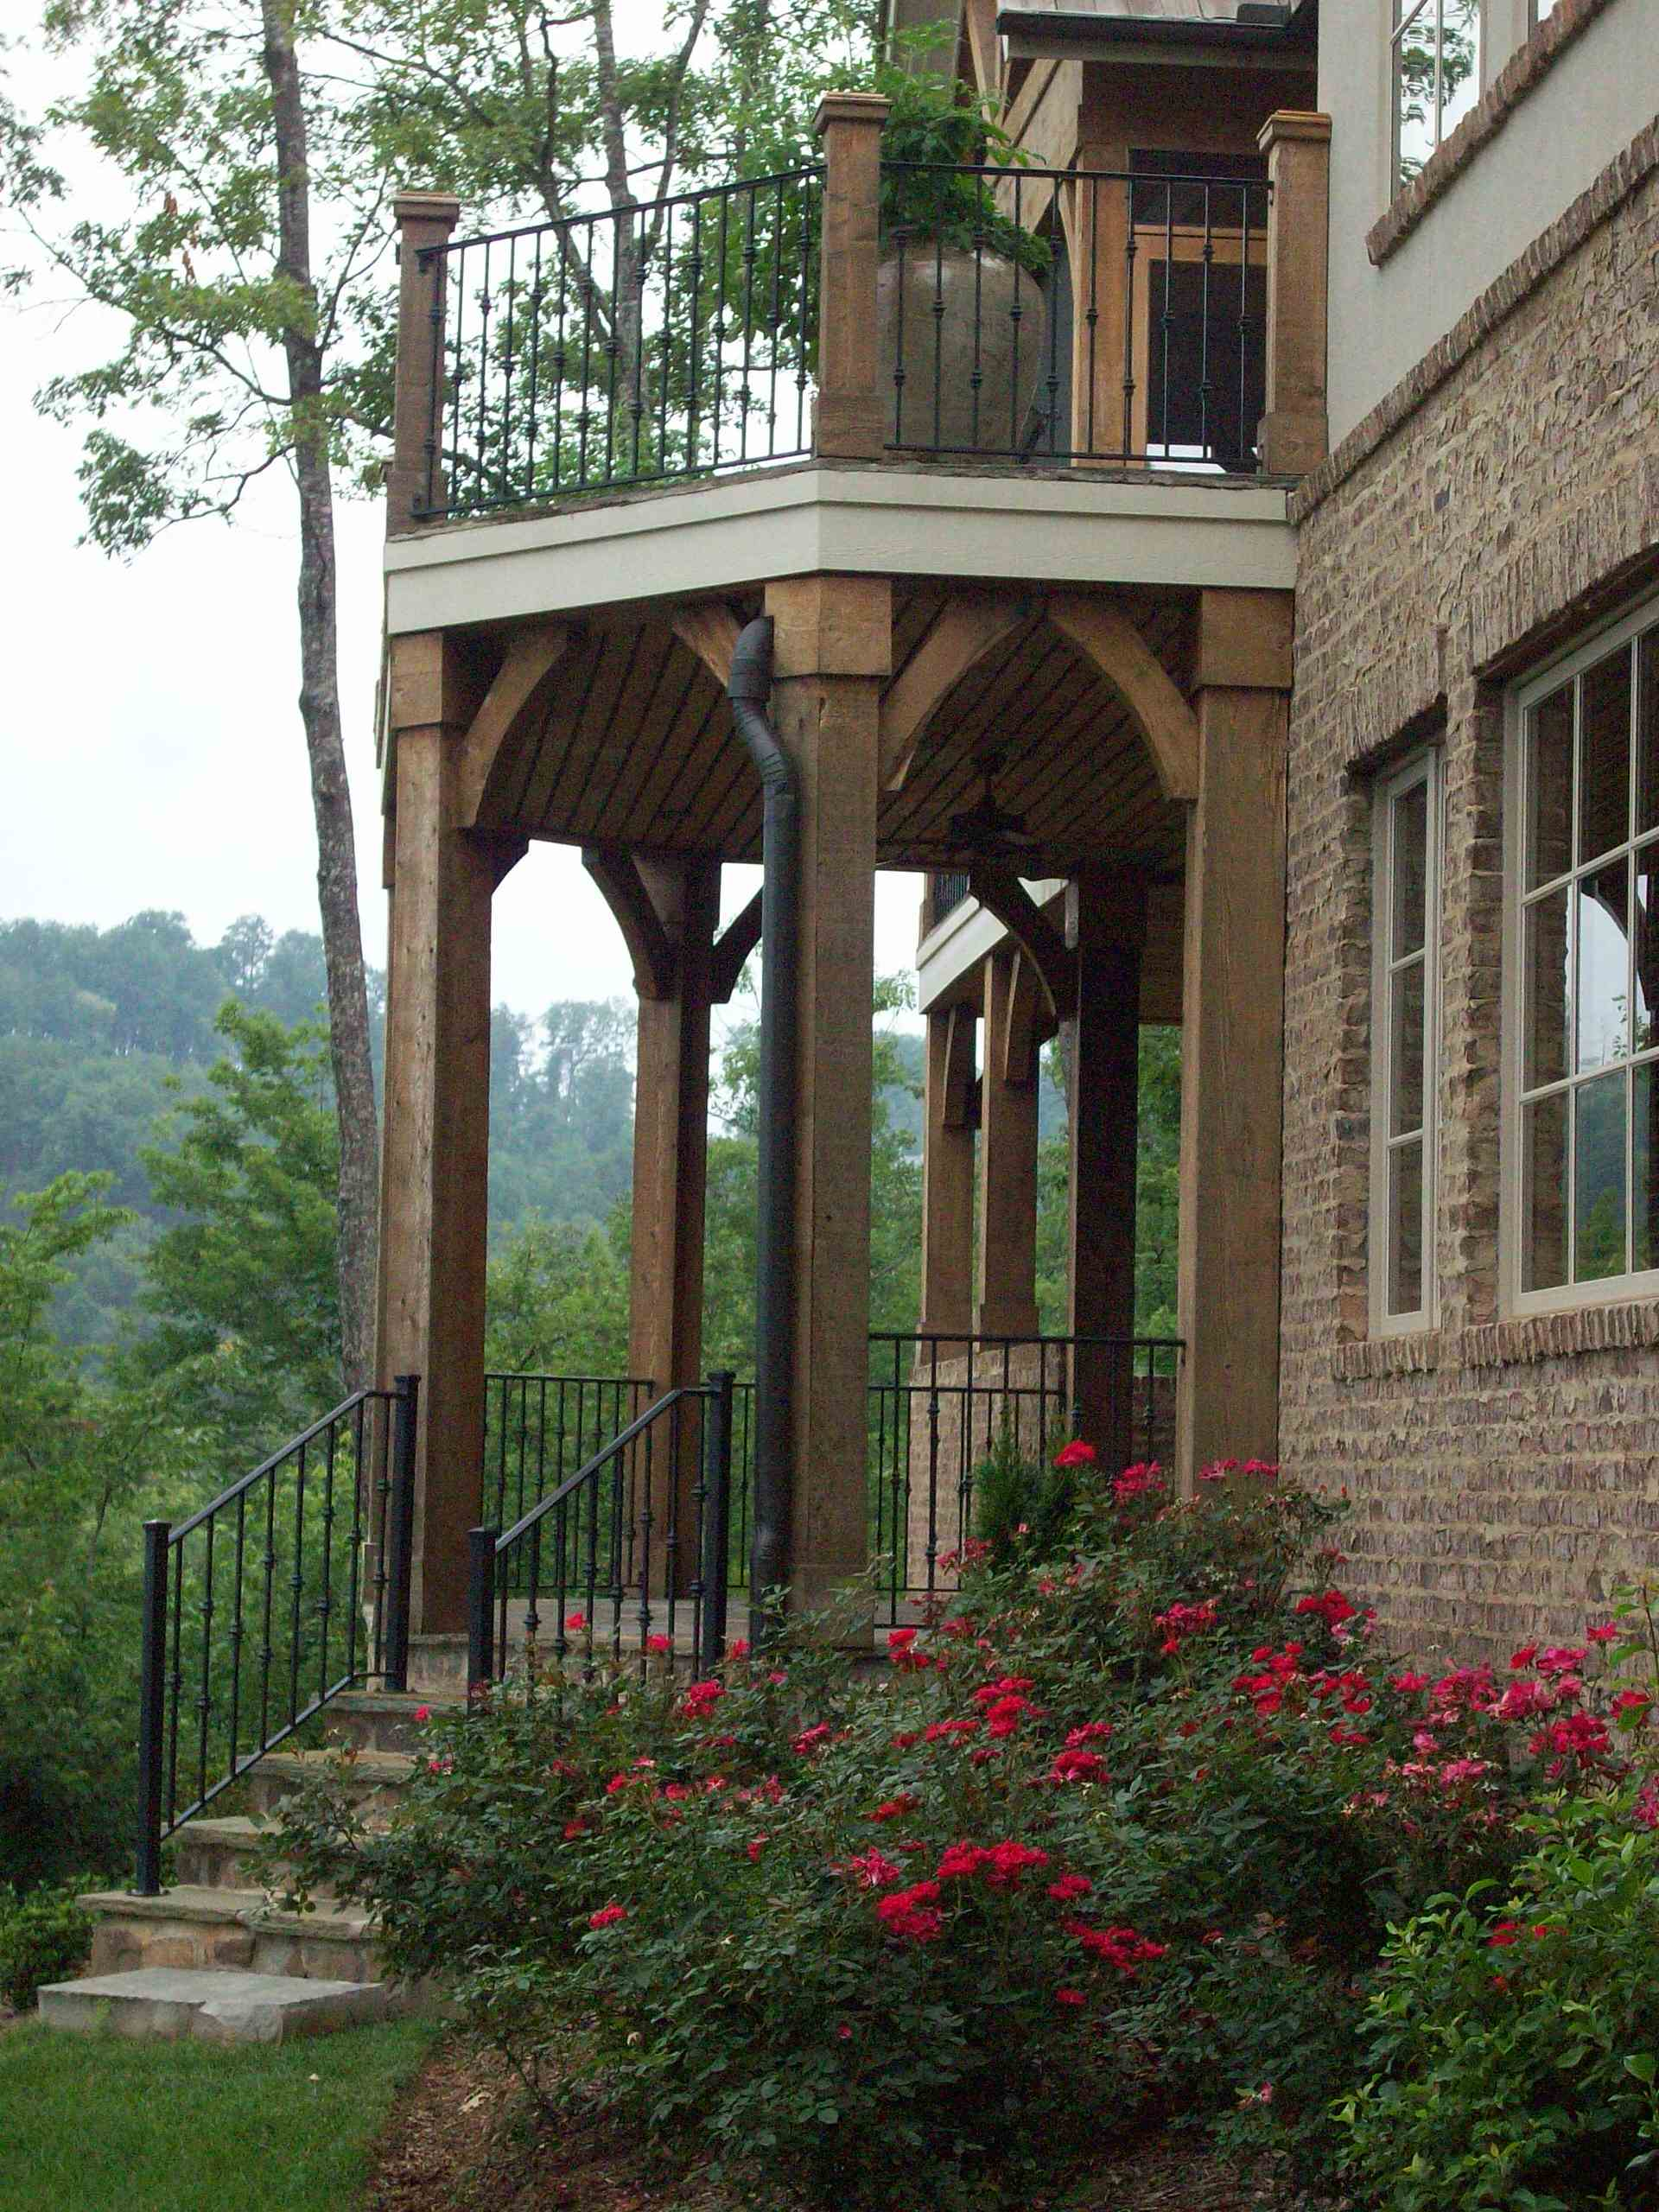 Inspiring Iron Railings Design for Staircase at Your Home: Arches And Balcony With Brick For Traditional Exterior Plus Foundation Planting Also Potted Plant With Roses And Iron Railings Also Wood Ceiling Plus Windows With Concrete Stair And Small Garden